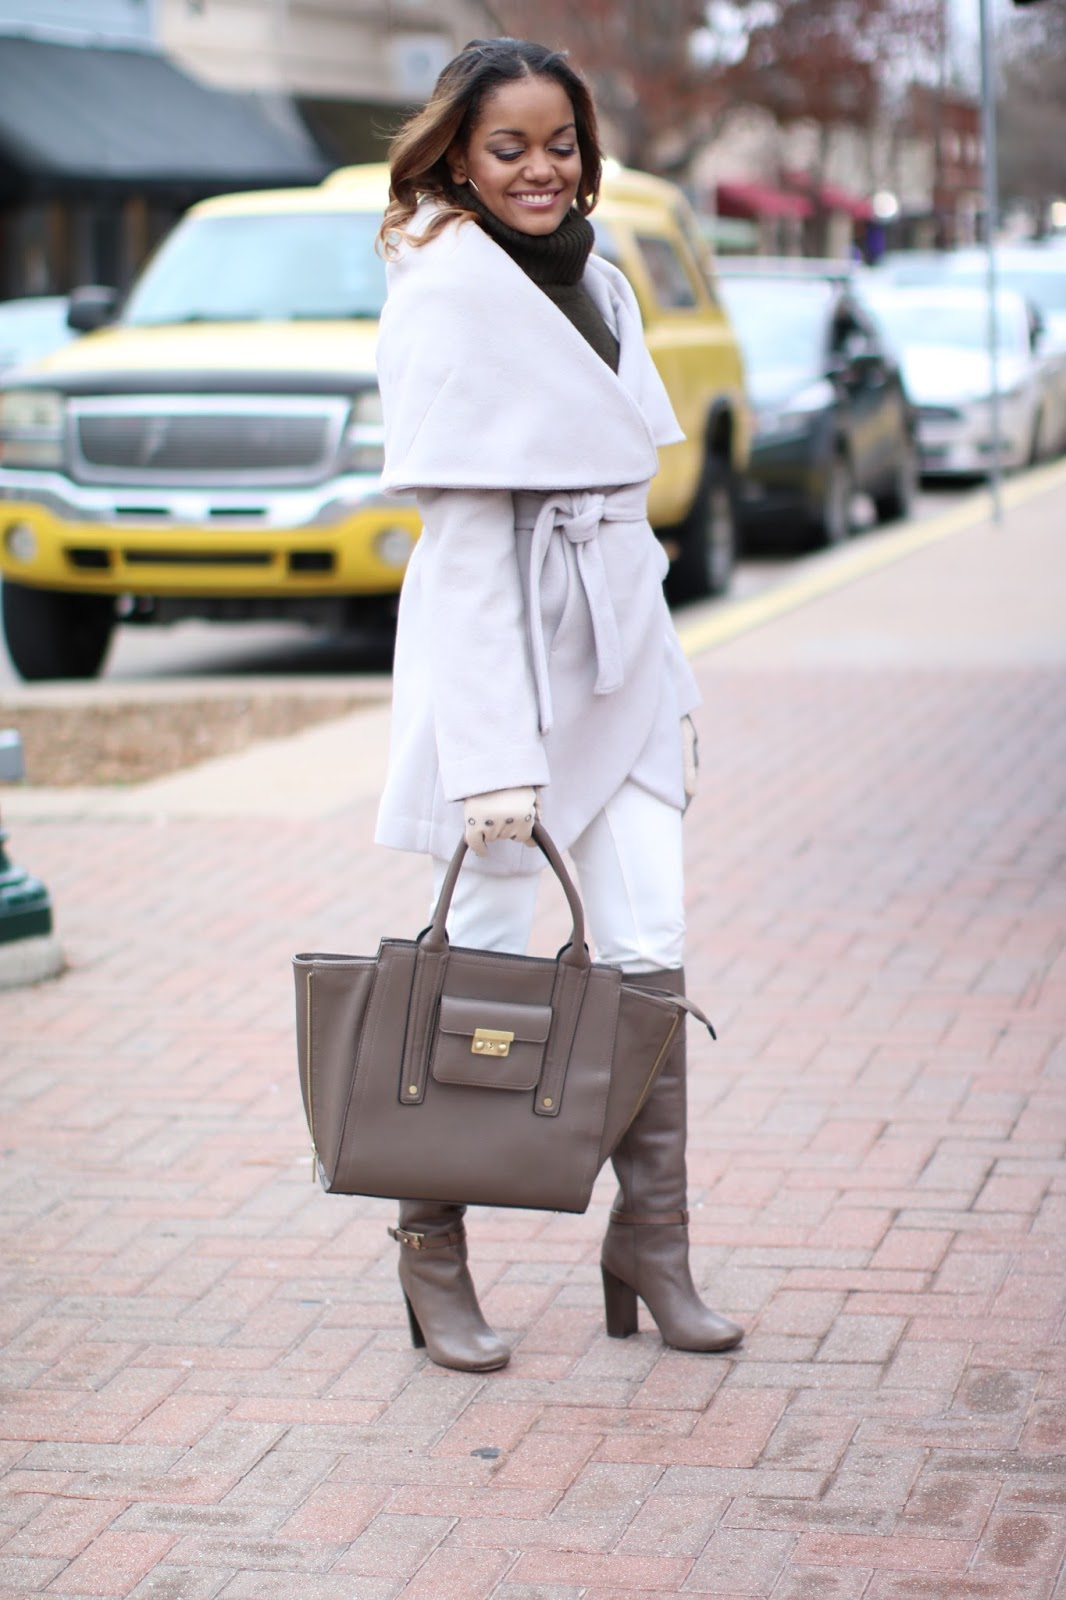 tahari shawl collar coat, shawl collar coat, henri bendel moto gloves, Olivia Pope style,philip lim for target handbag, tory burch boots, taupe boots, wear white in winter, winter fashion, fashion blogger, dallas blogger, black girl blogger, how to wear neutrals